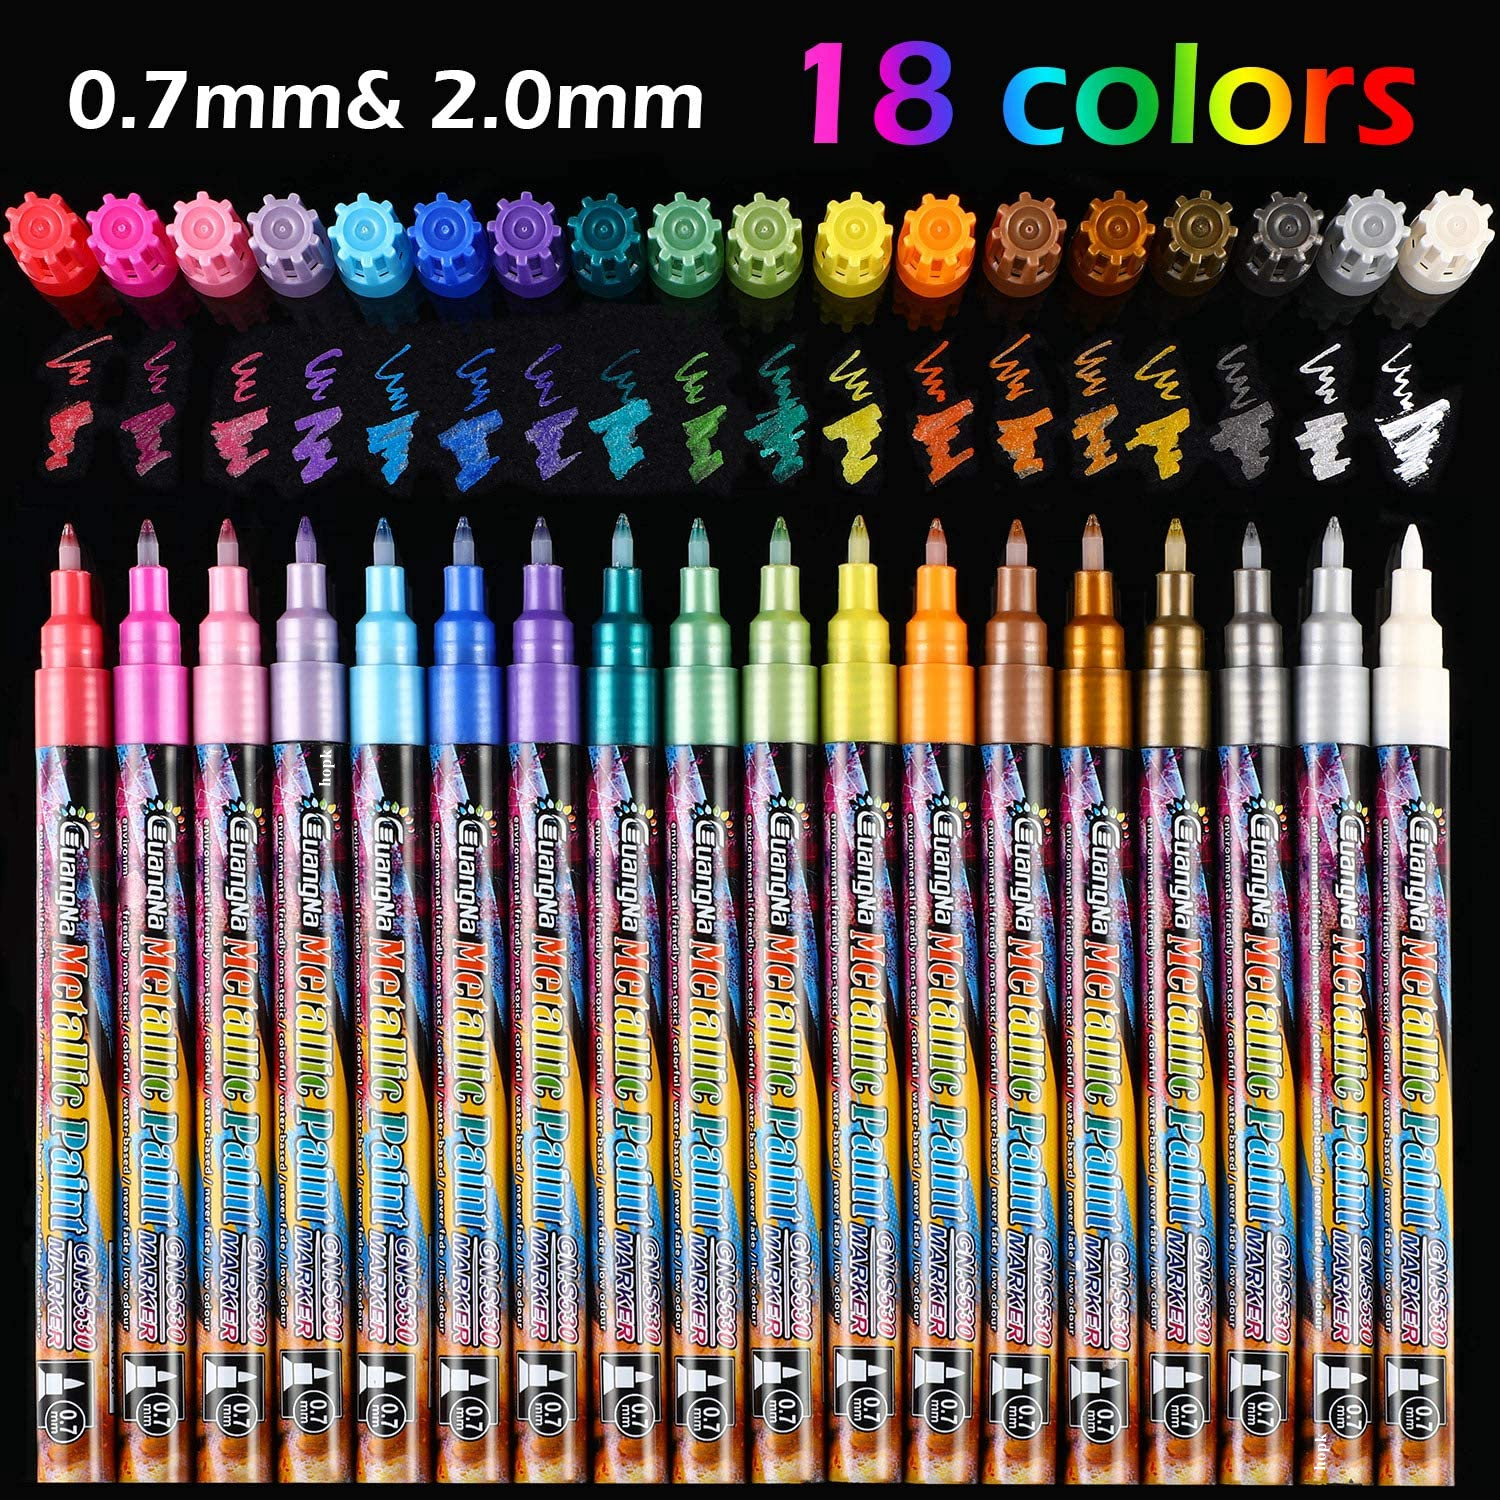 24 Colors Acrylic Metallic Marker Pens, Extra Fine Point Paint Pen, Art Permanent Markers Painting for Cards Signature Lettering